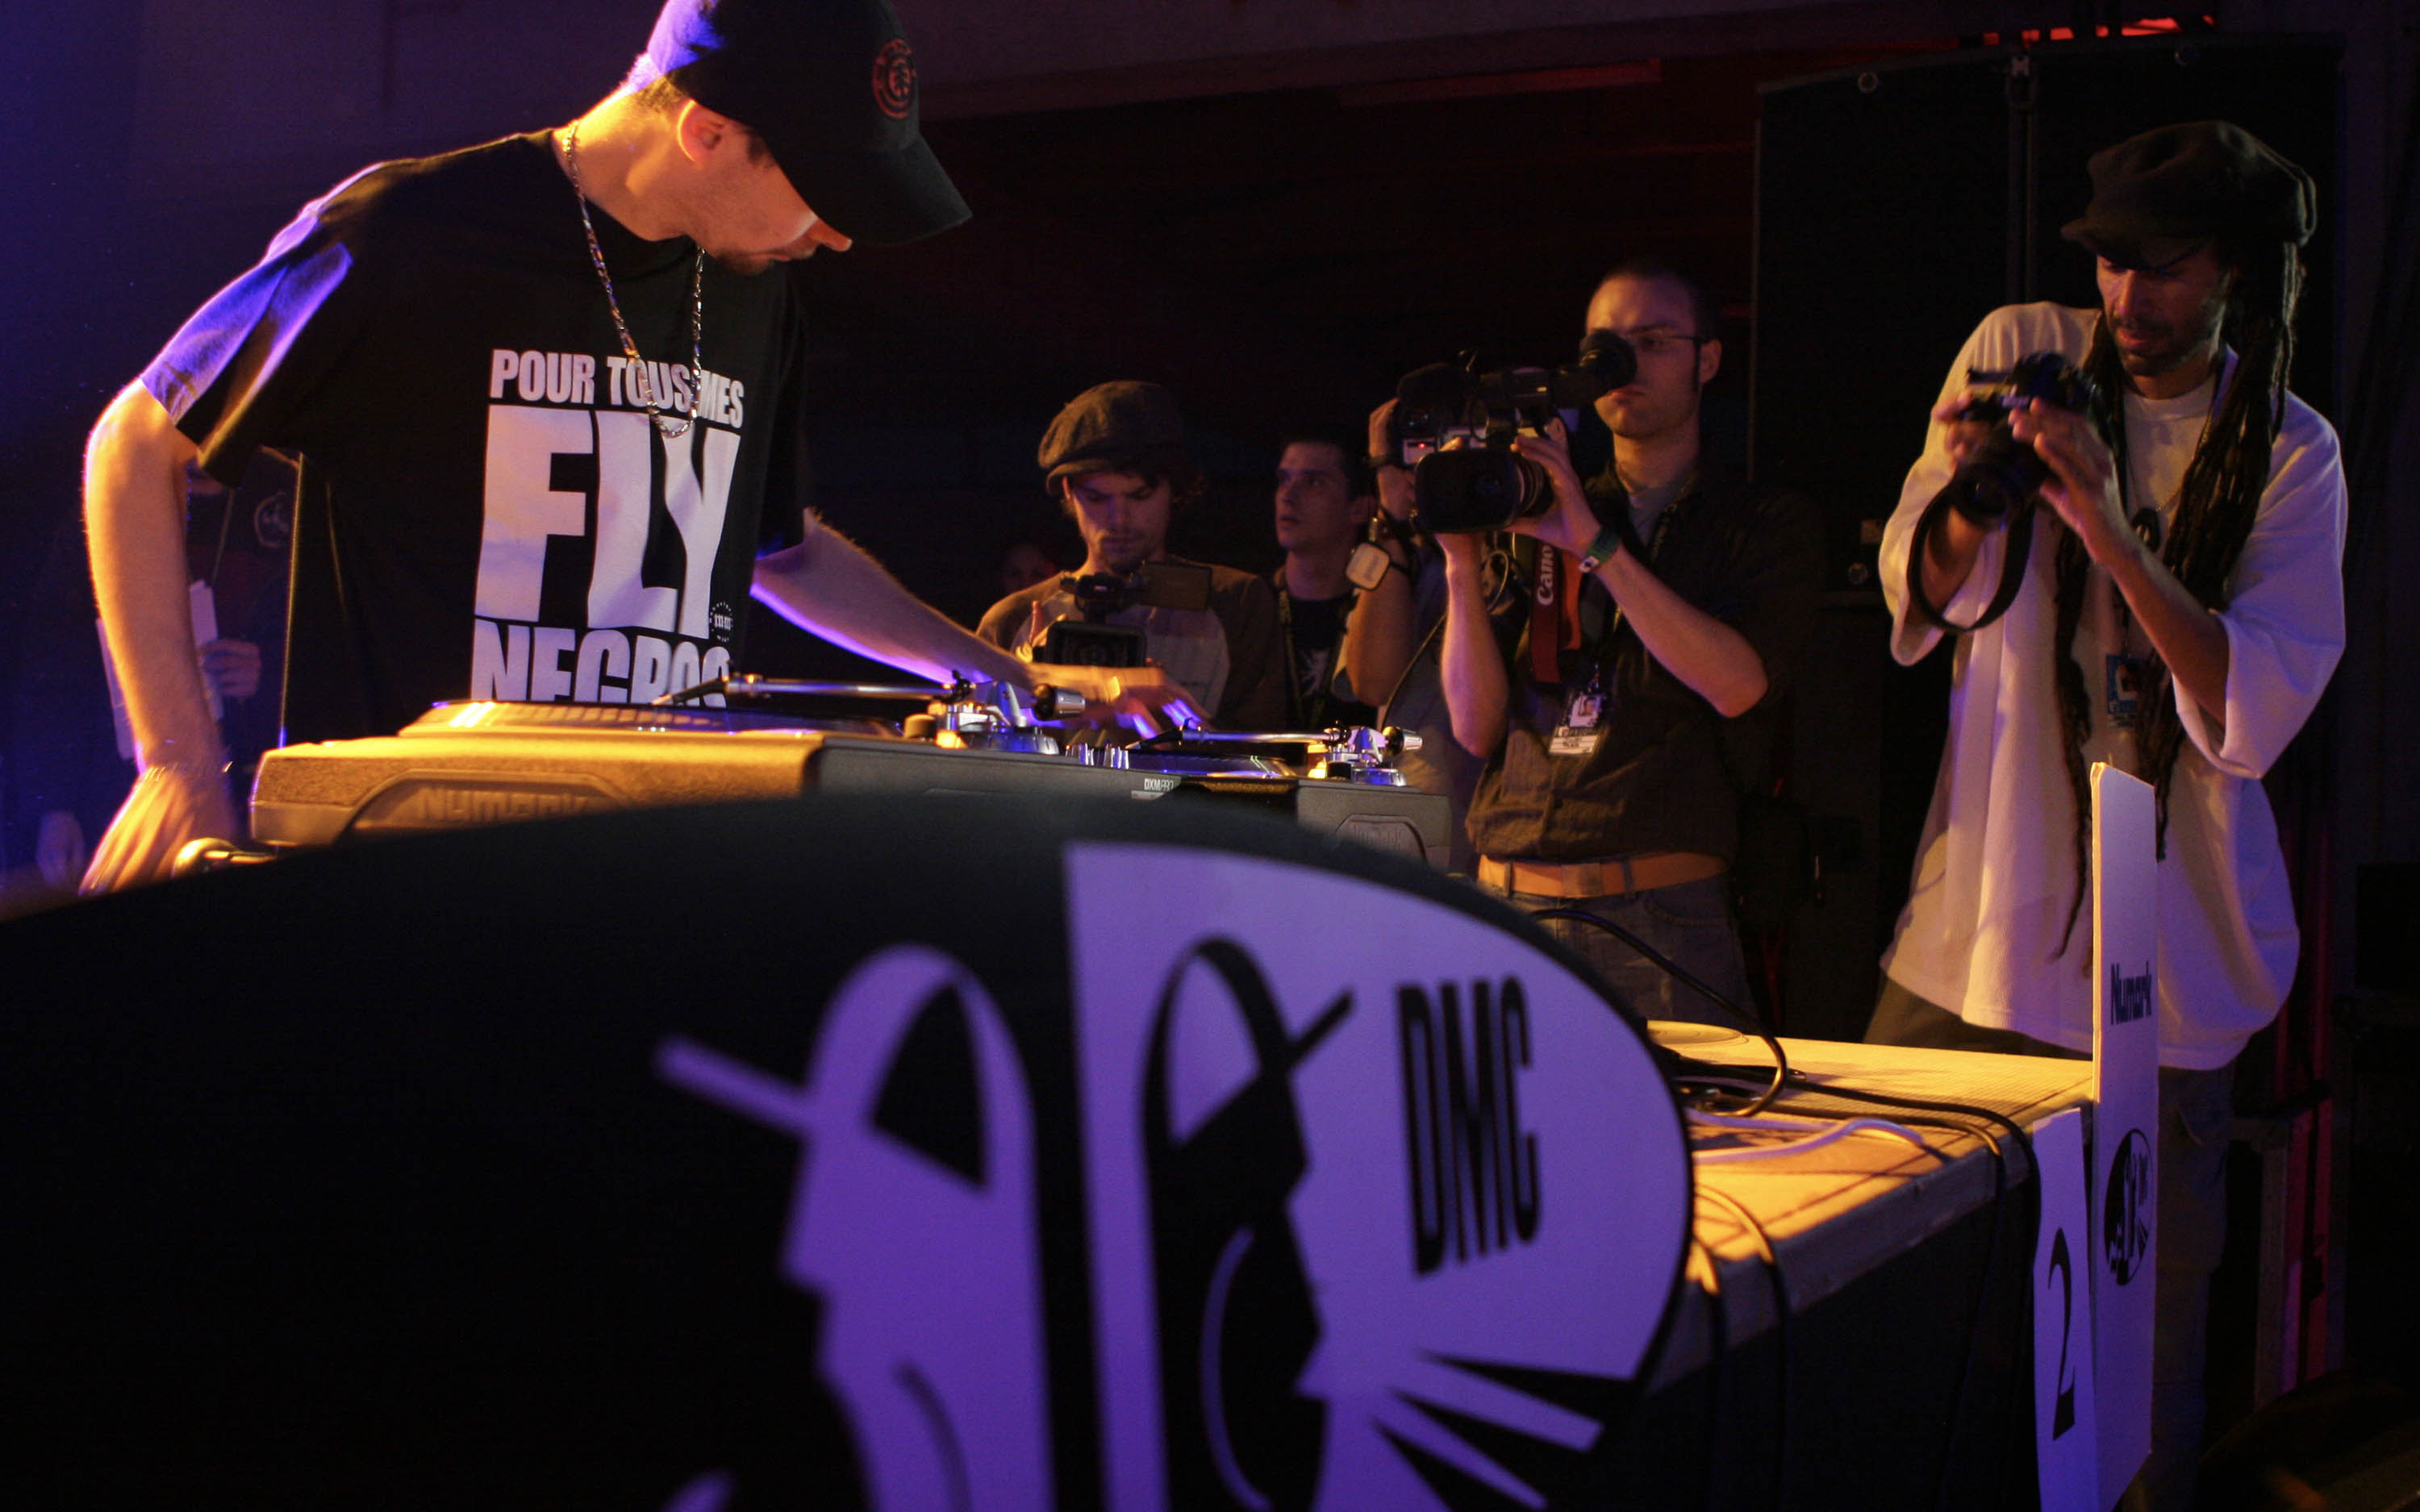 Dj-Fly-DMC-France-2006